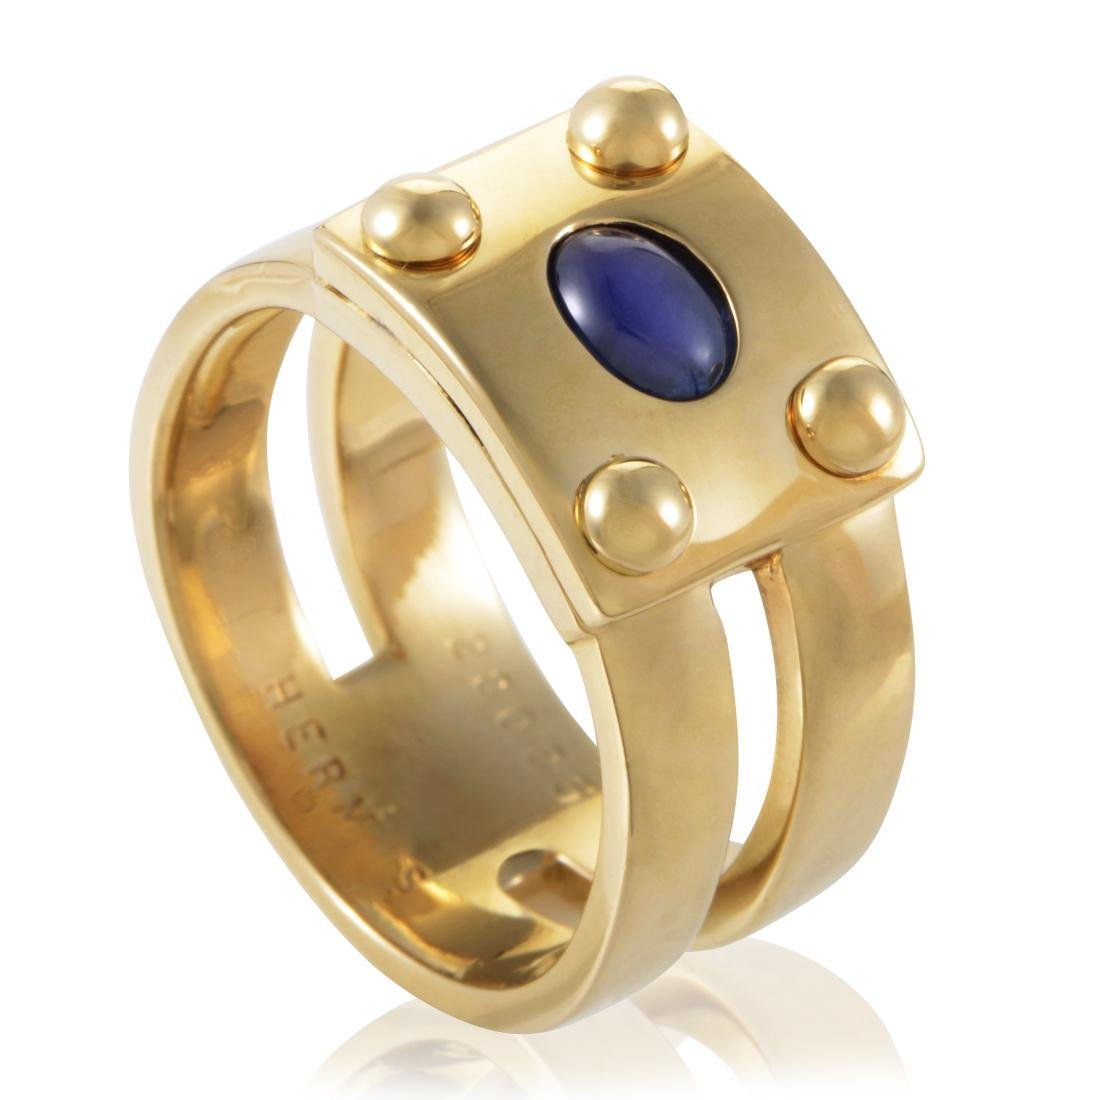 Hermes 18K Yellow Gold Sapphire Cabochon Ring, .40ct